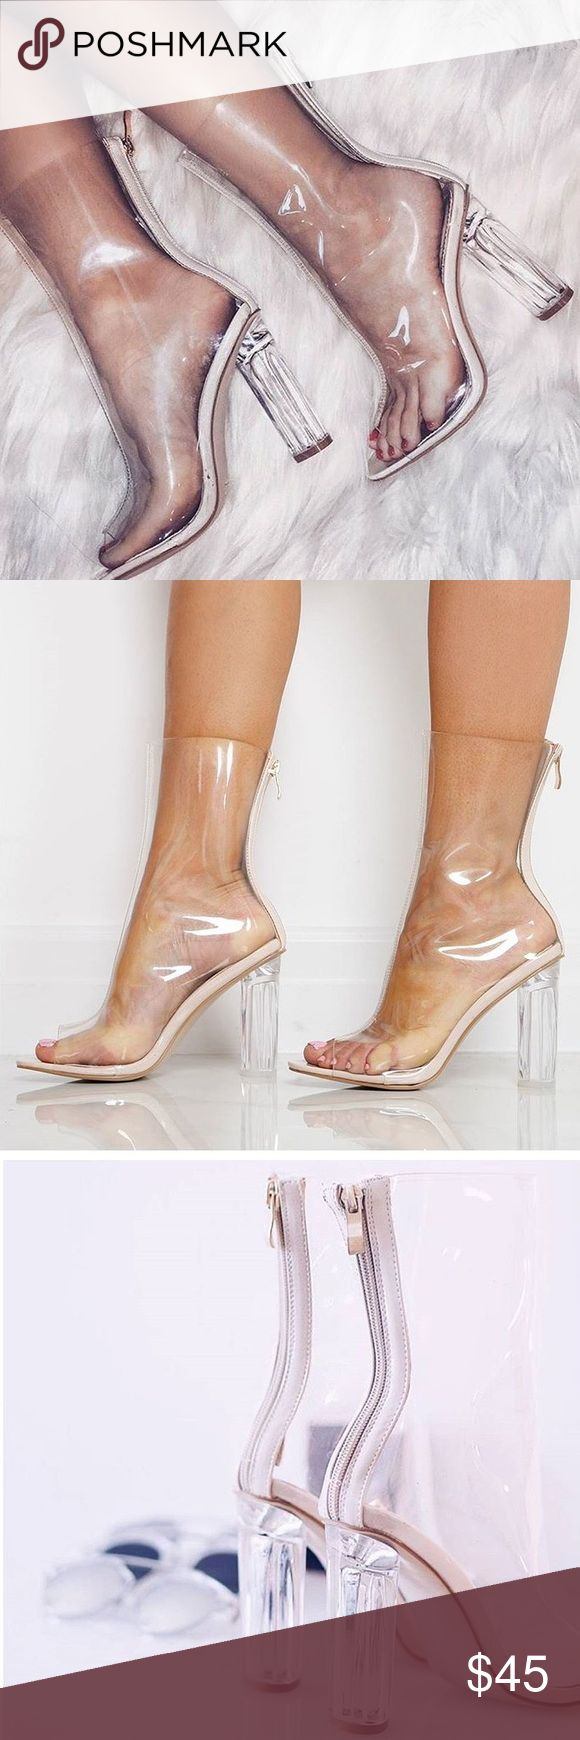 Nude Perspex Clear Ankle Boots Peep toe, very sexy,comfortable and stylish. Worn only once and sold out pretty much everywhere. No damage, they're in great condition. From Lola Shoetique (marked otherwise for exposure) as seen on Kim Kardashian and other celebrities. ❌ price is firm holds returns trades Yeezy Shoes Heels